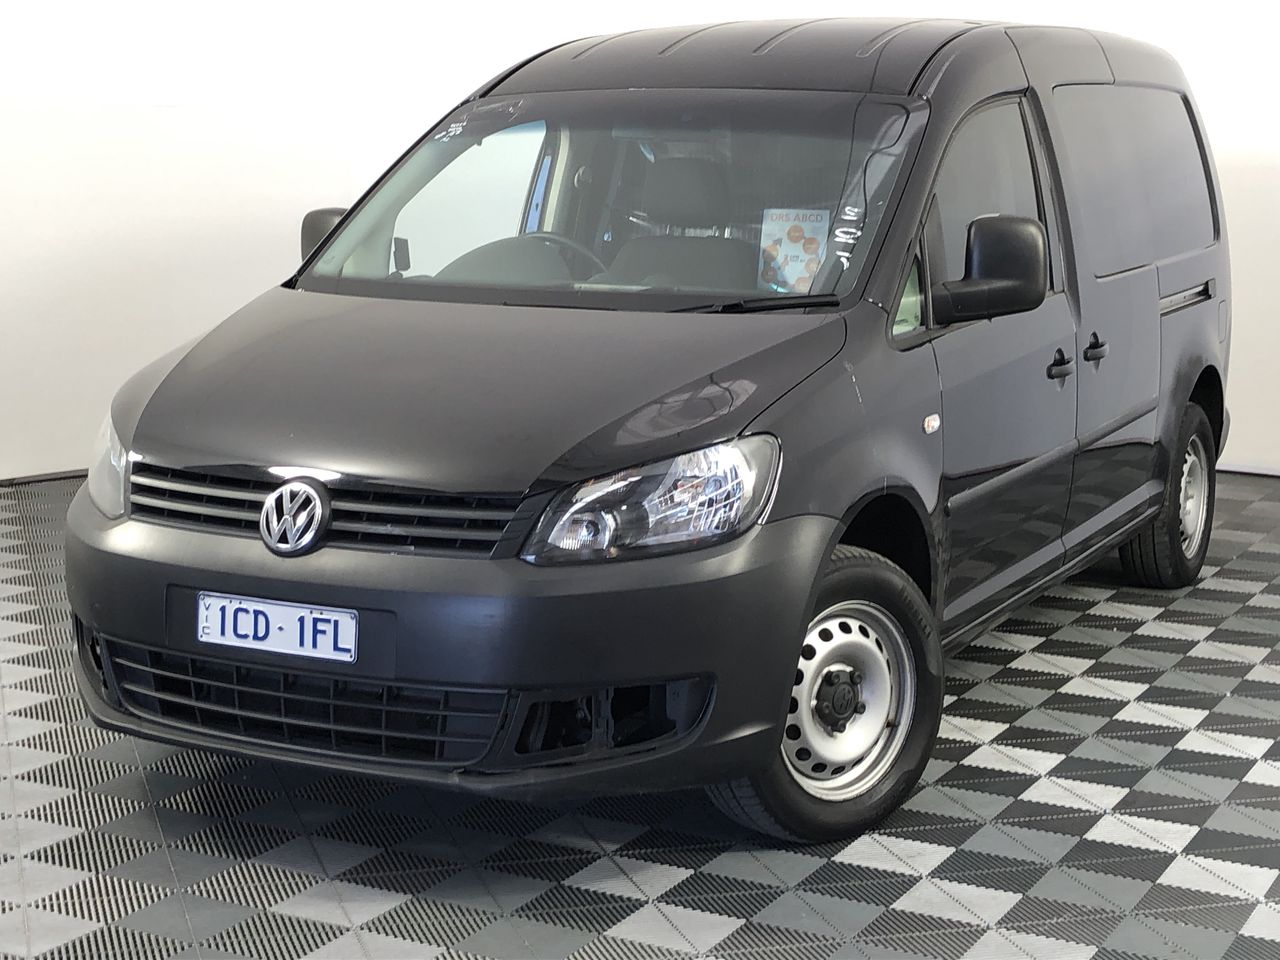 2014 Volkswagen Caddy TDI250 MAXI BLUEMOT. Turbo Diesel Automatic Van